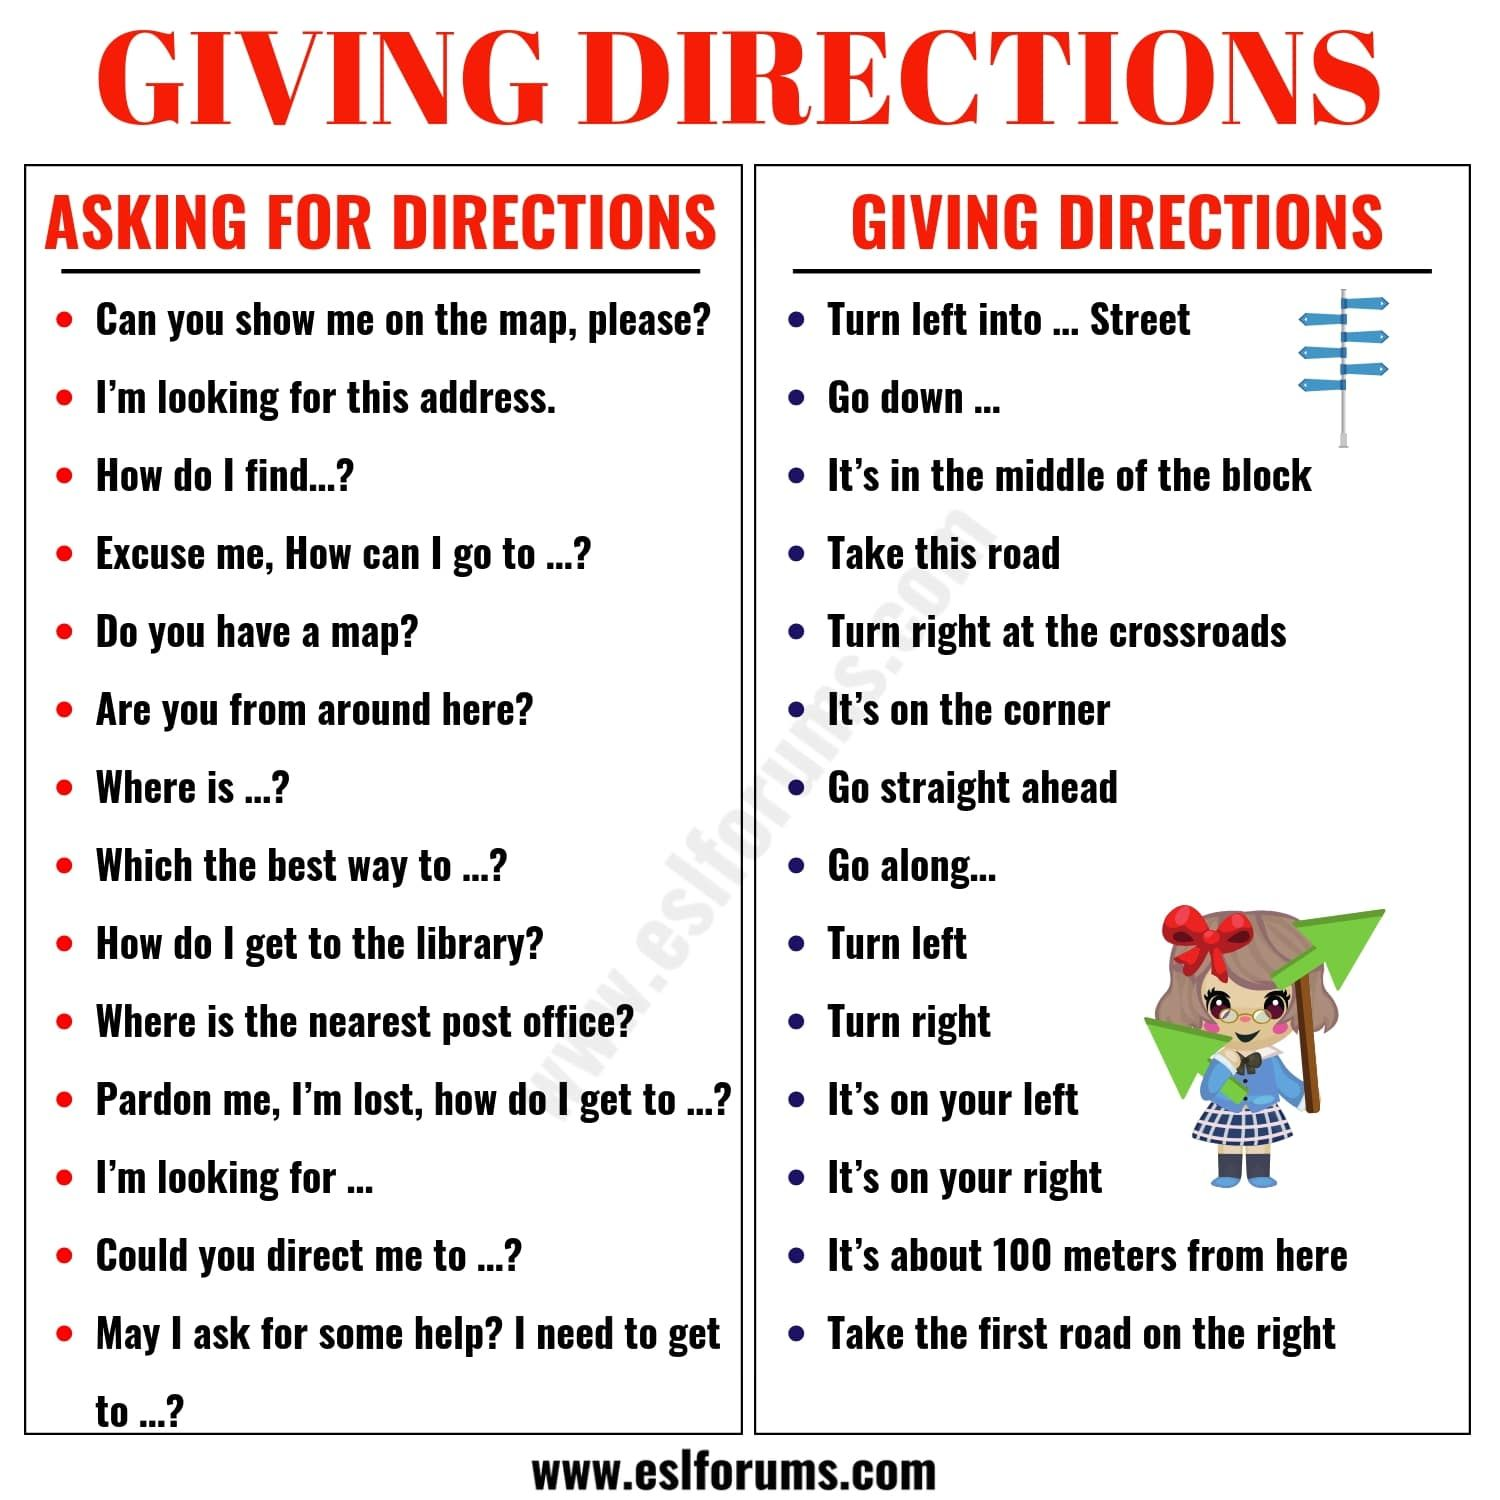 Asking For And Giving Directions In English En